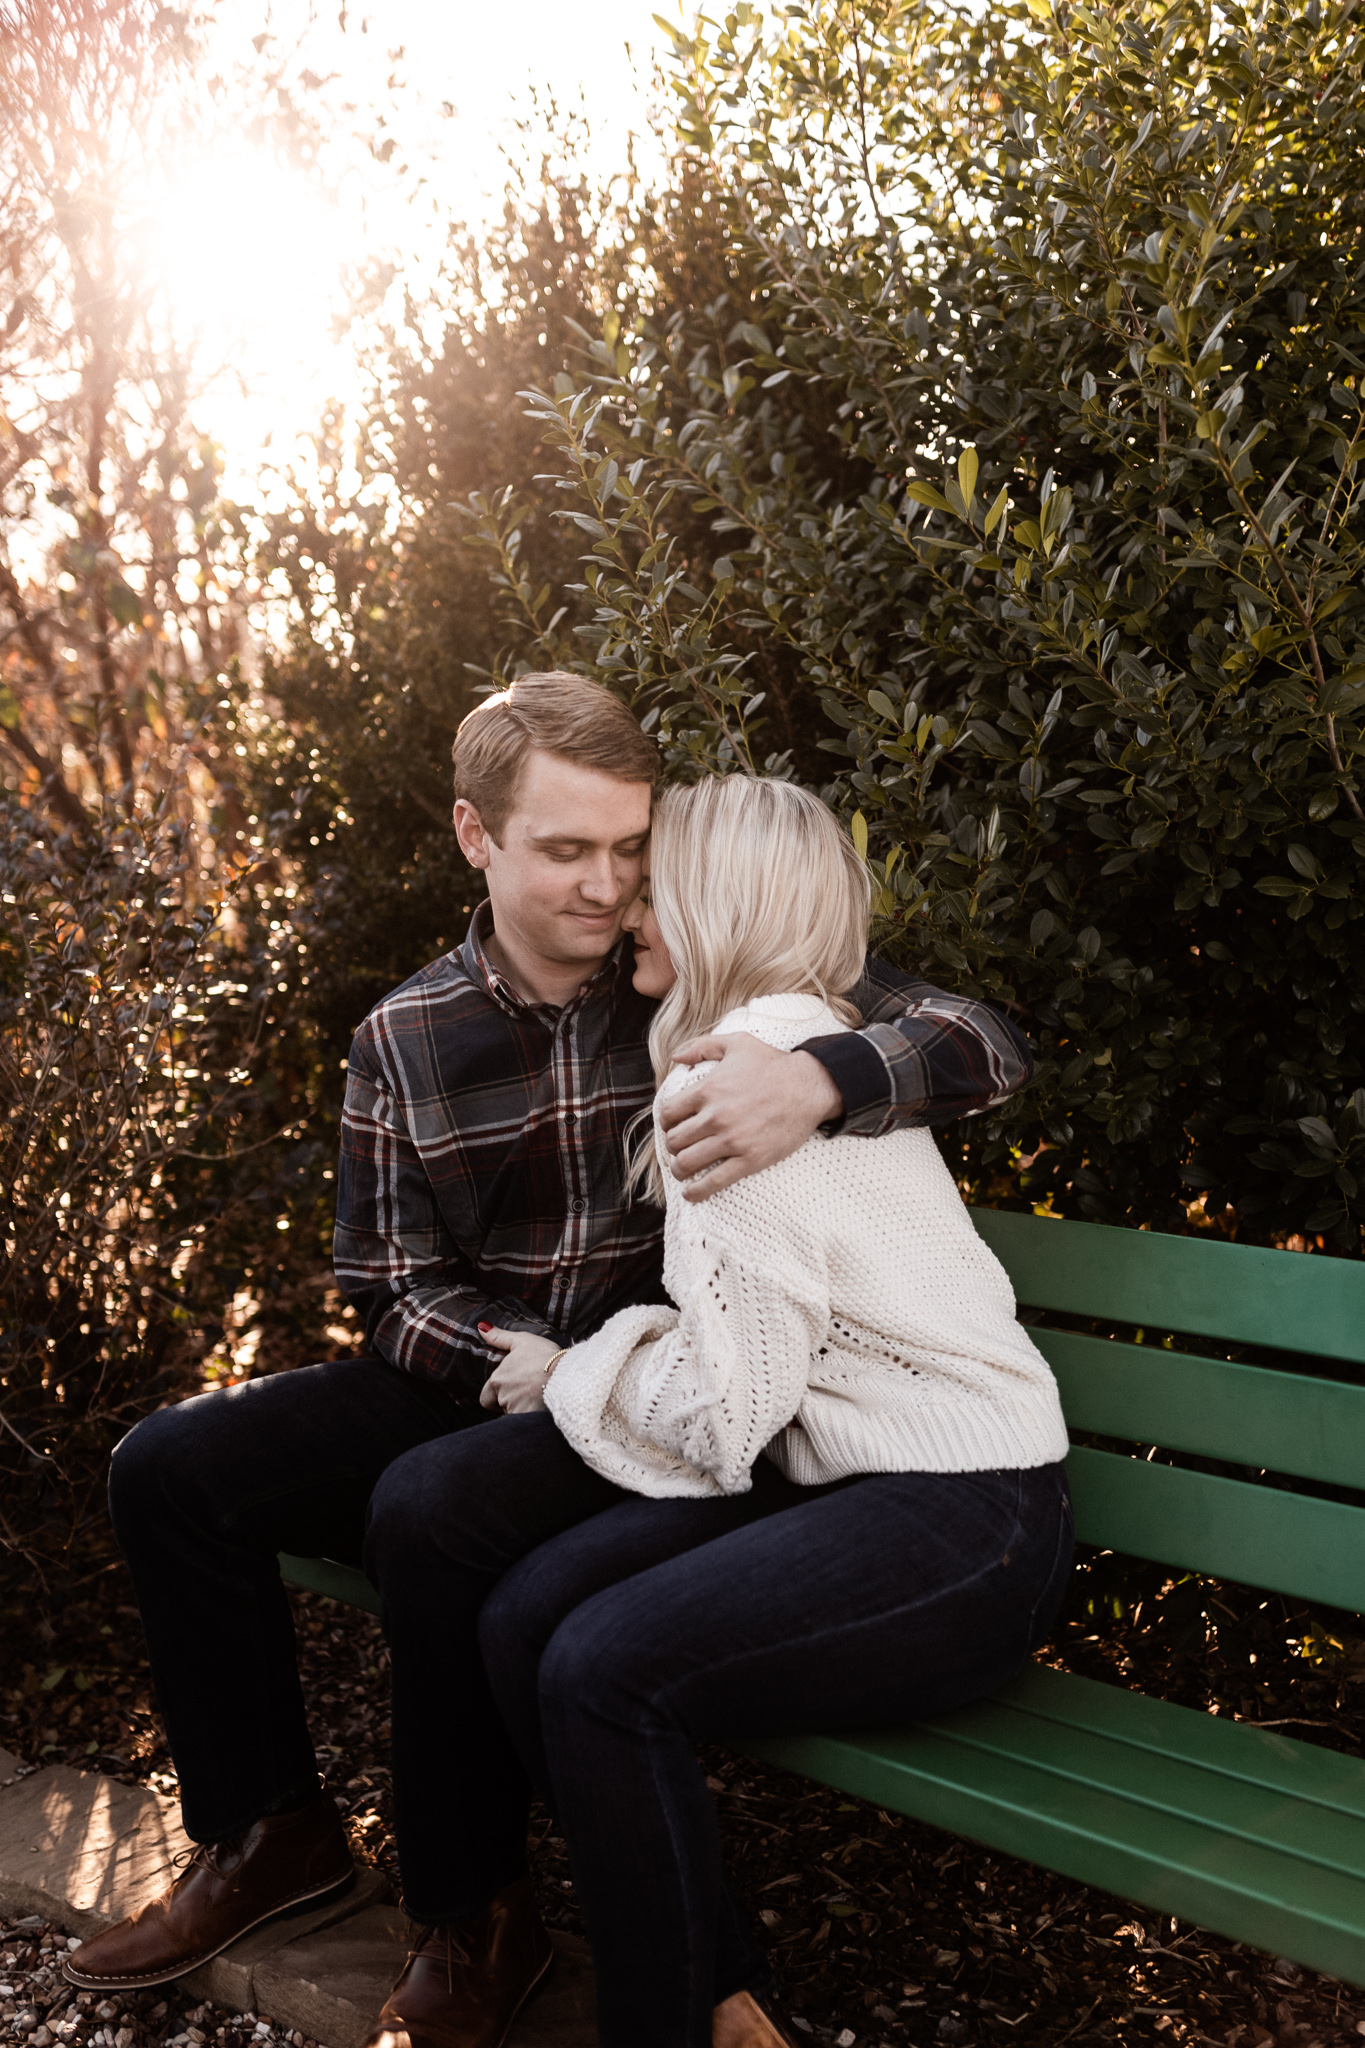 Foster + Alexa | Spring Garden Engagements | Oklahoma Wedding Photographer-15.jpg